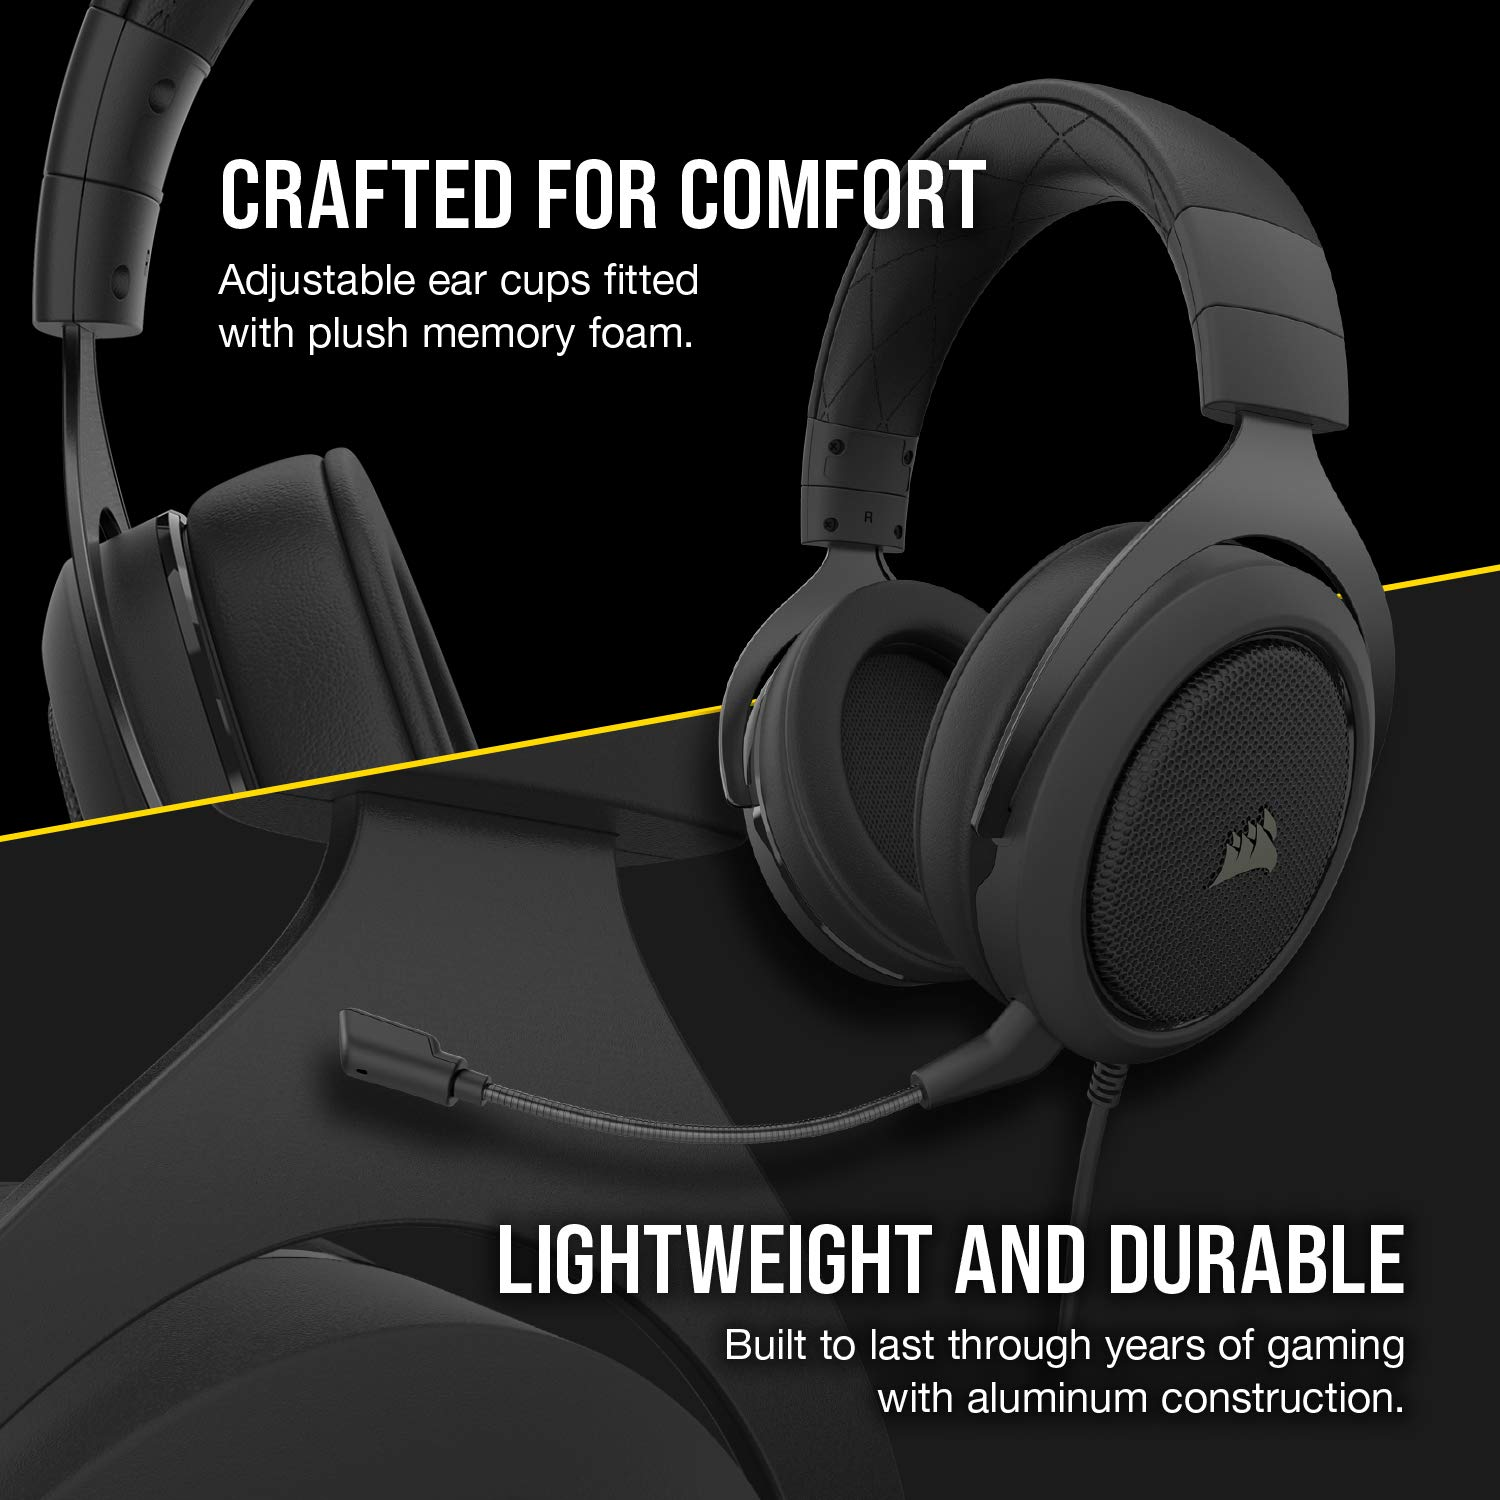 Adjustable Memory Foam Ear Cups, Lightweight, Noise-Cancelling Detachable Microphone with PC, PS4, Xbox One, Switch and Mobile Compatibility Green Corsair HS50 PRO Stereo Gaming Headset